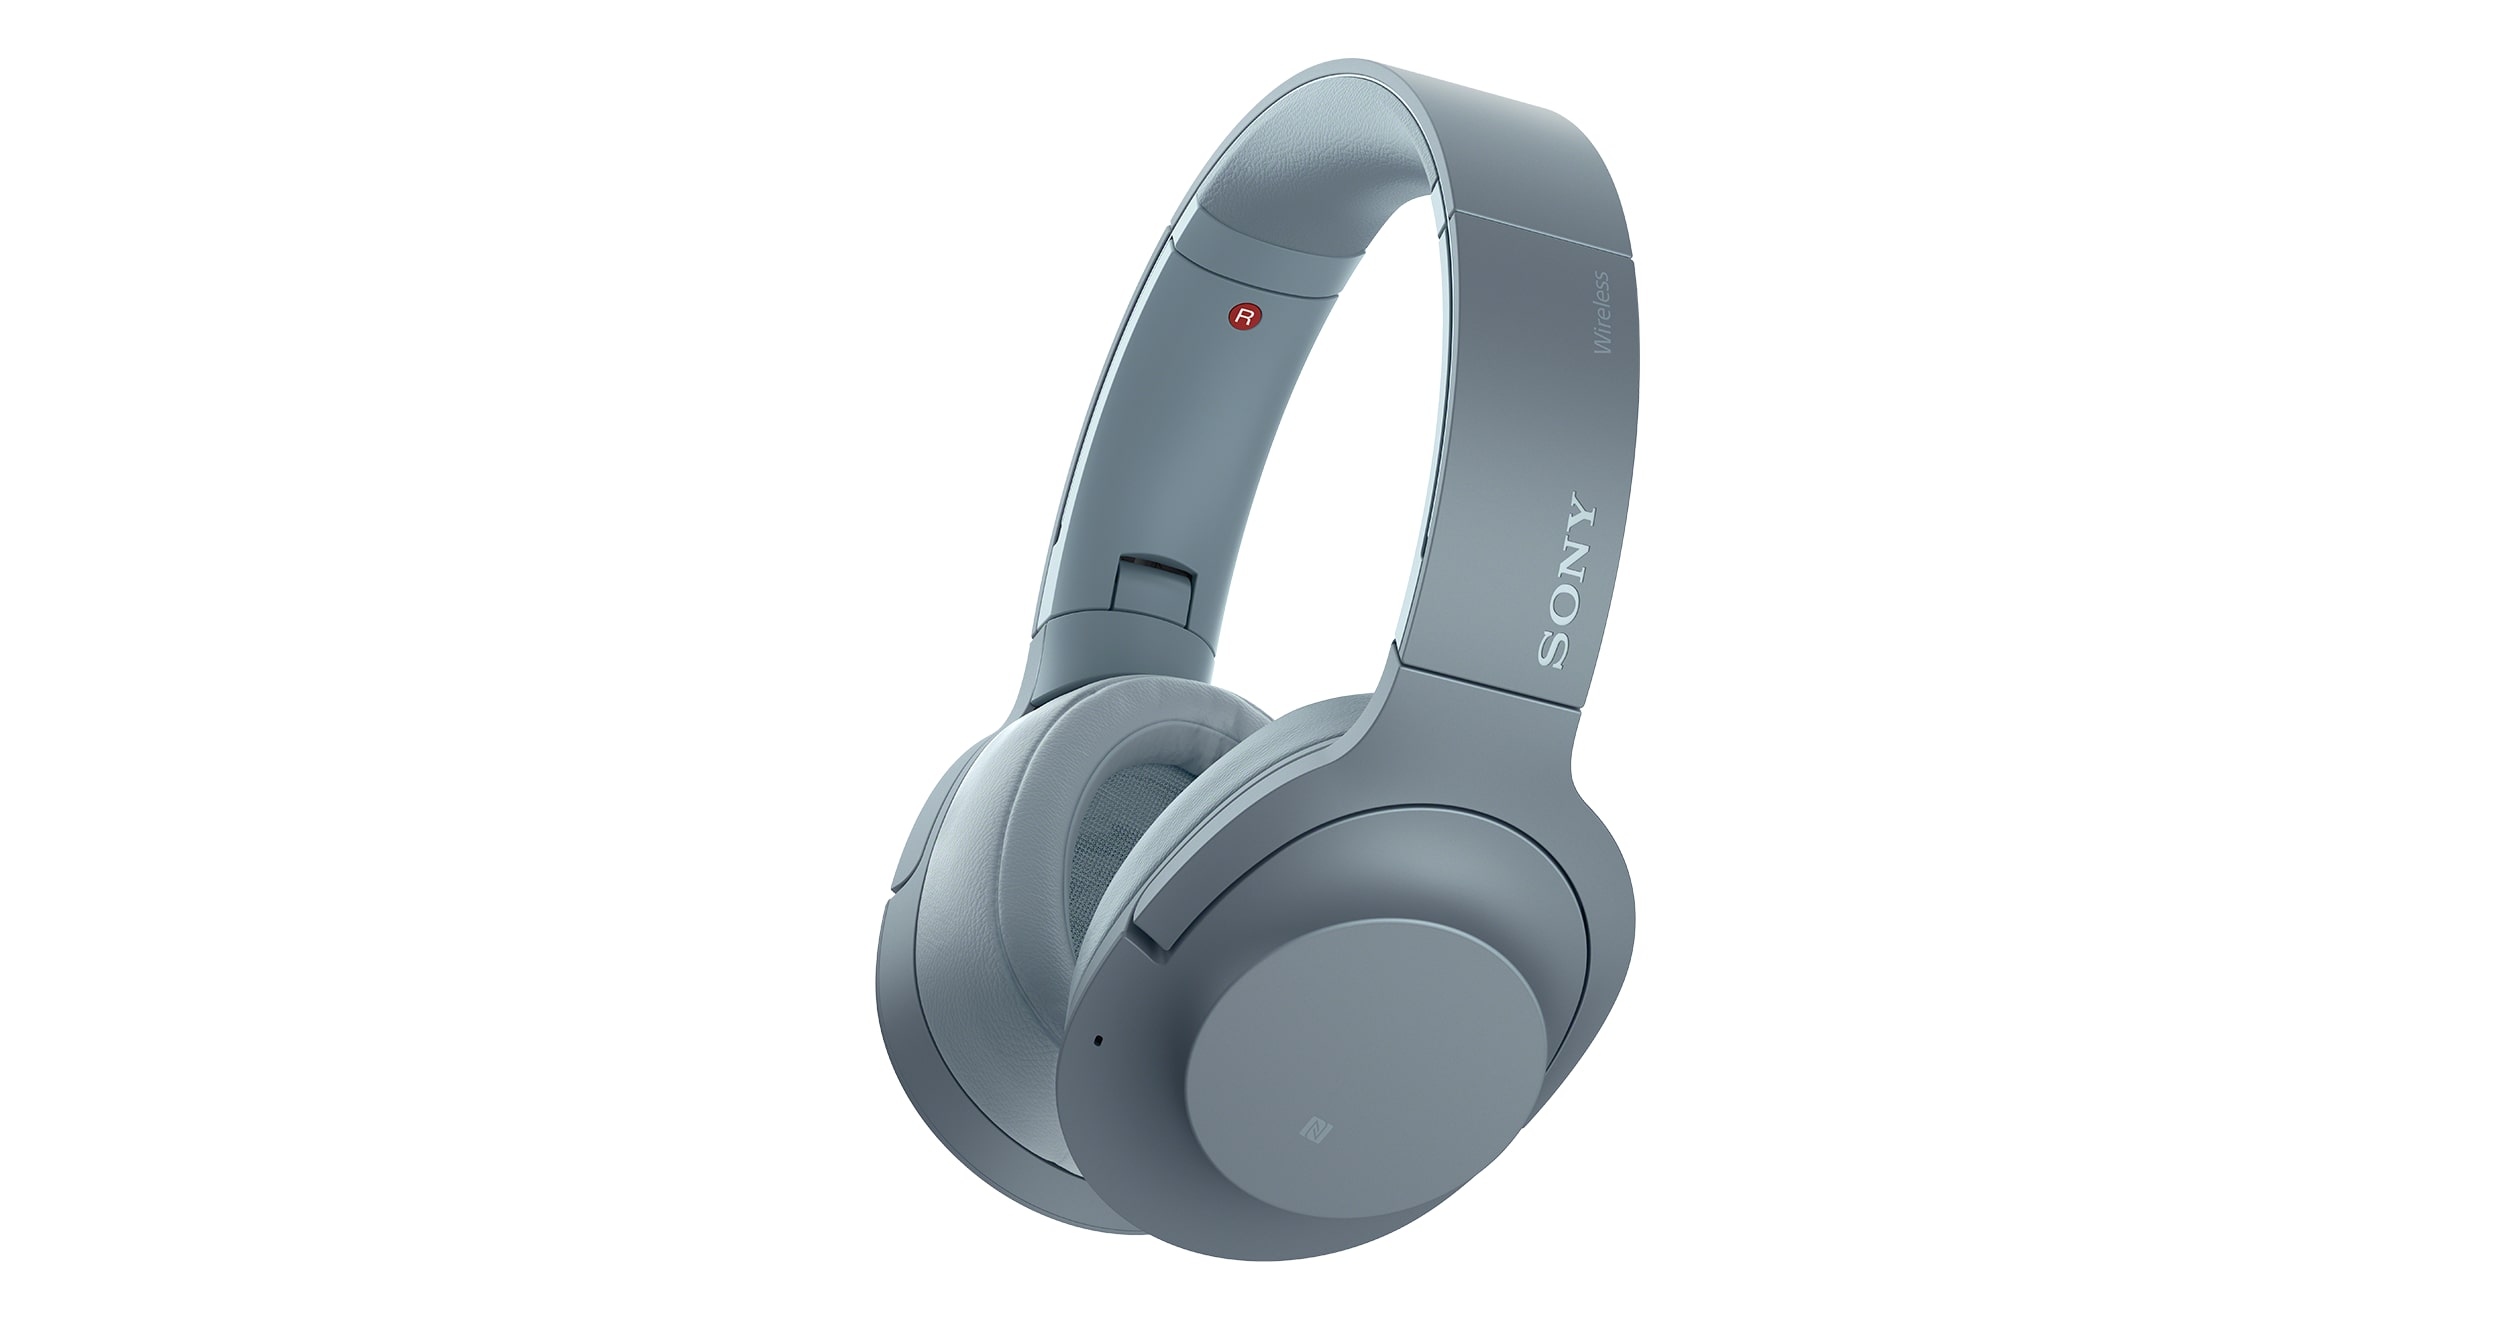 def477a82e4 WH-H900N h.ear on 2 Wireless Noise Cancelling Headphones   WH-H900N ...